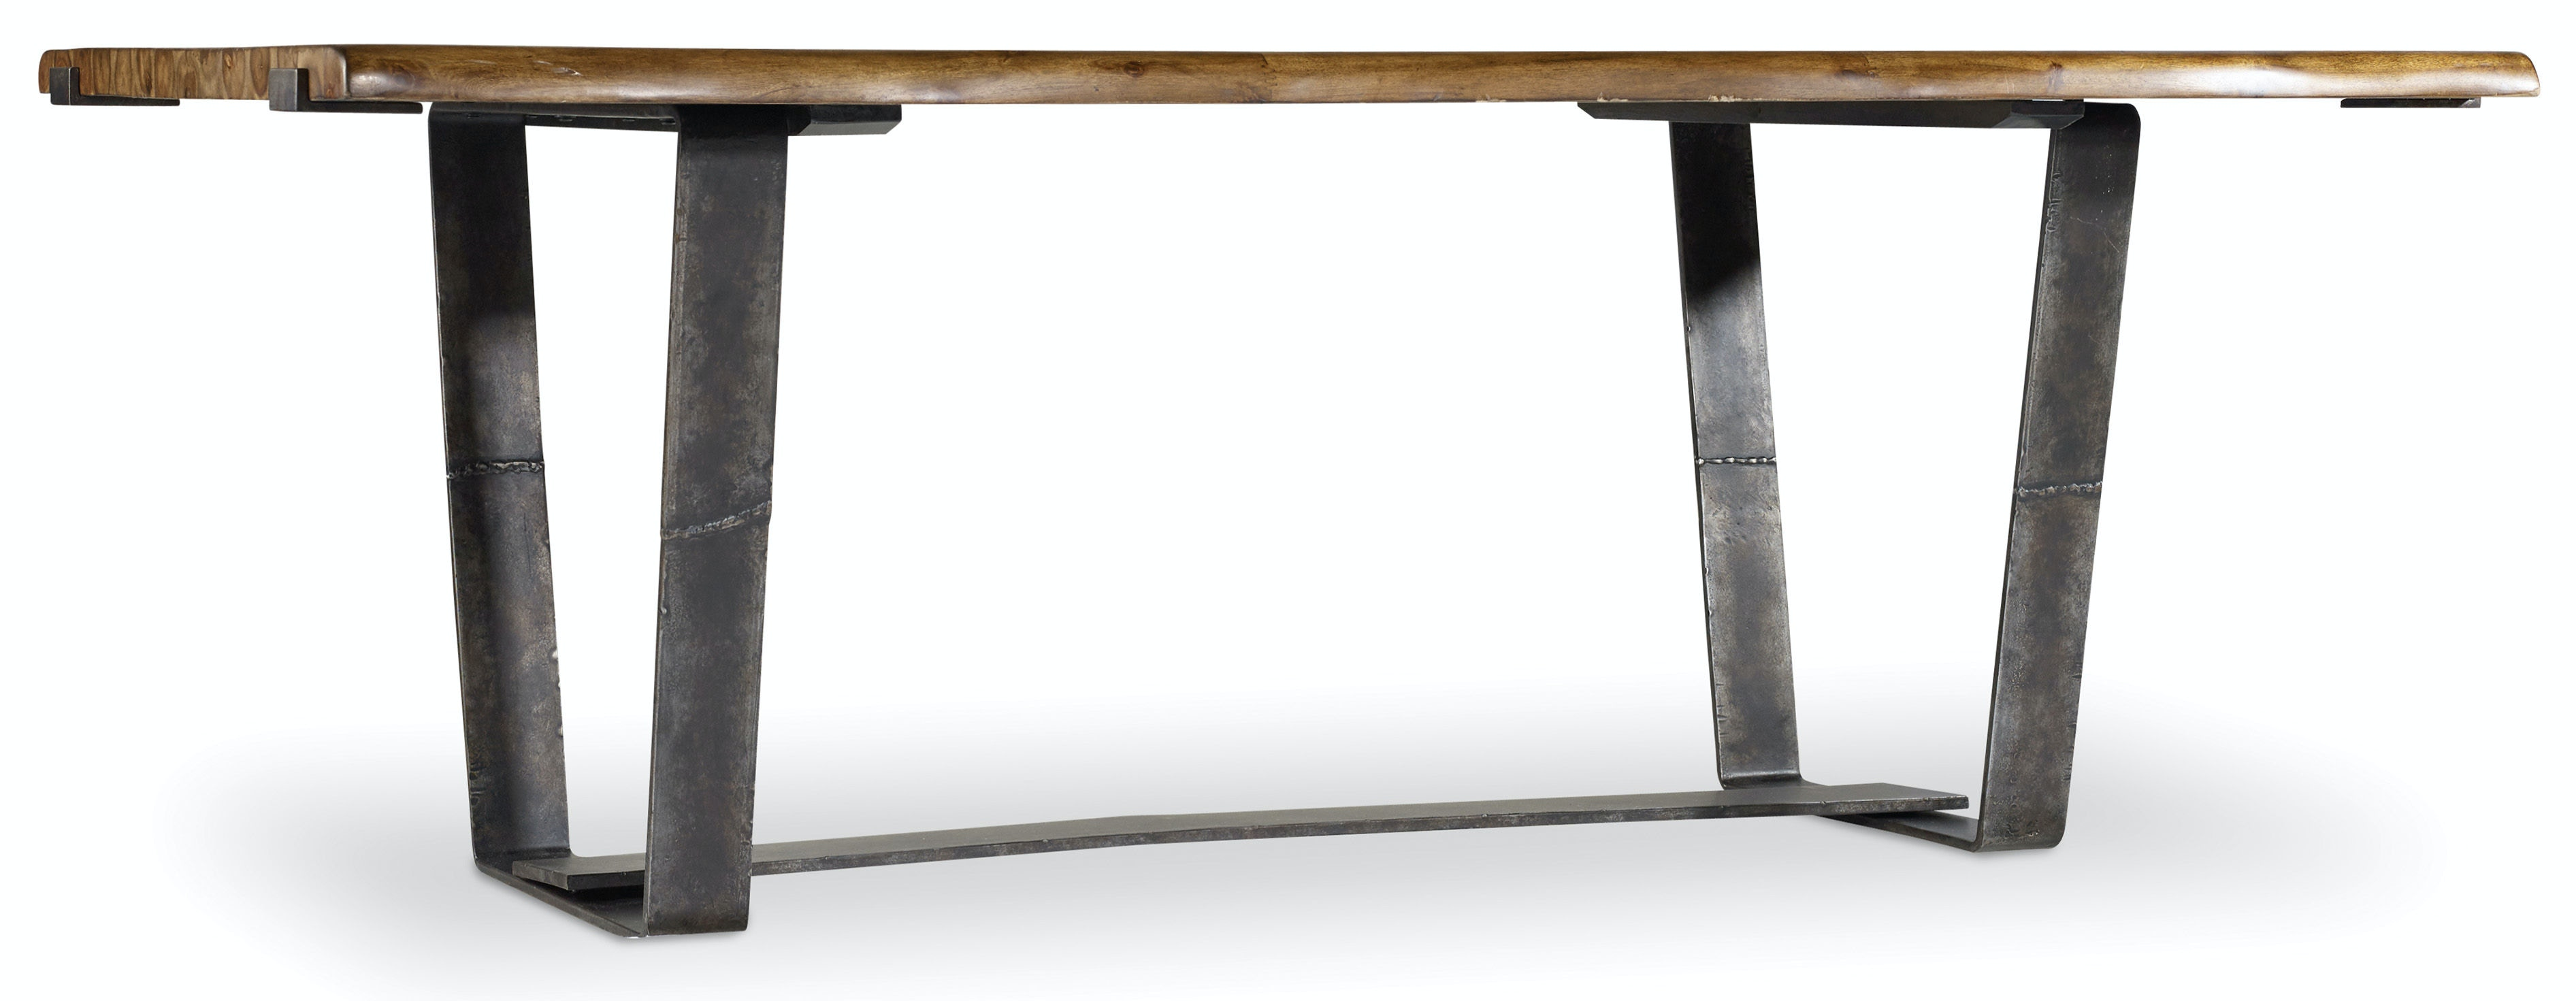 Hooker Furniture Dining Room Live Edge Dining Table 5590  : 5590 75200silo from www.finessehomeliving.com size 1024 x 768 jpeg 21kB